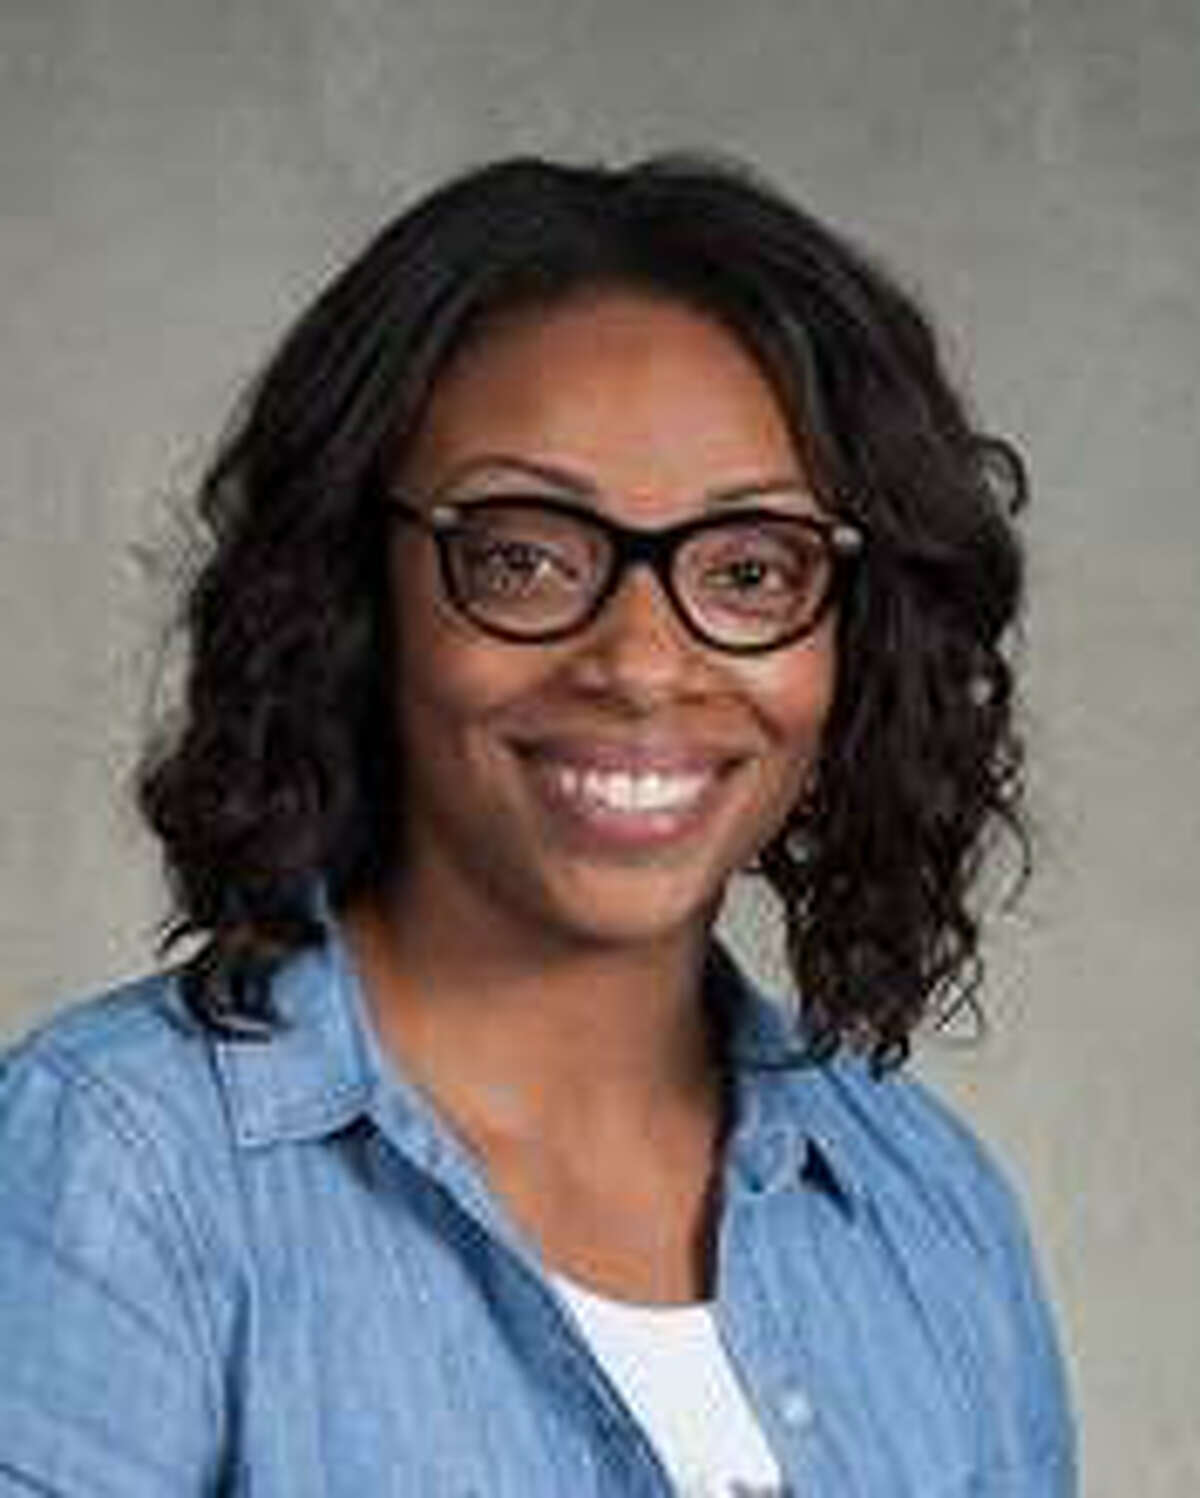 TrudiHewell has been named new Intake Coordinator for Child Guidance Clinic.